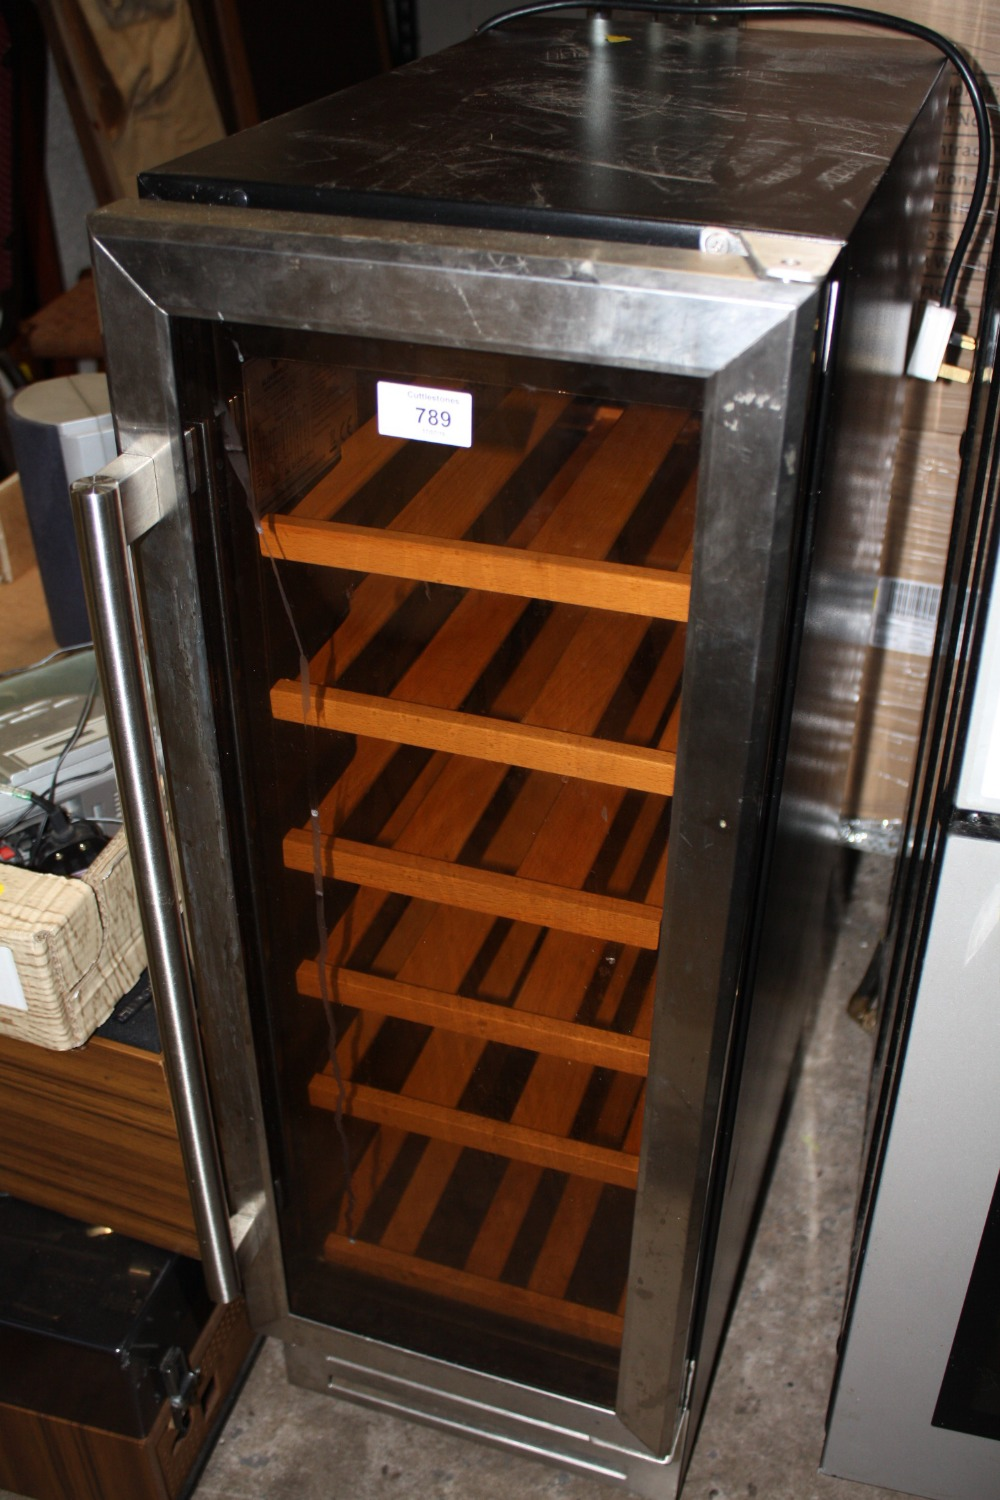 Lot 789 - A GLEN DIMPLEX WINE COOLER